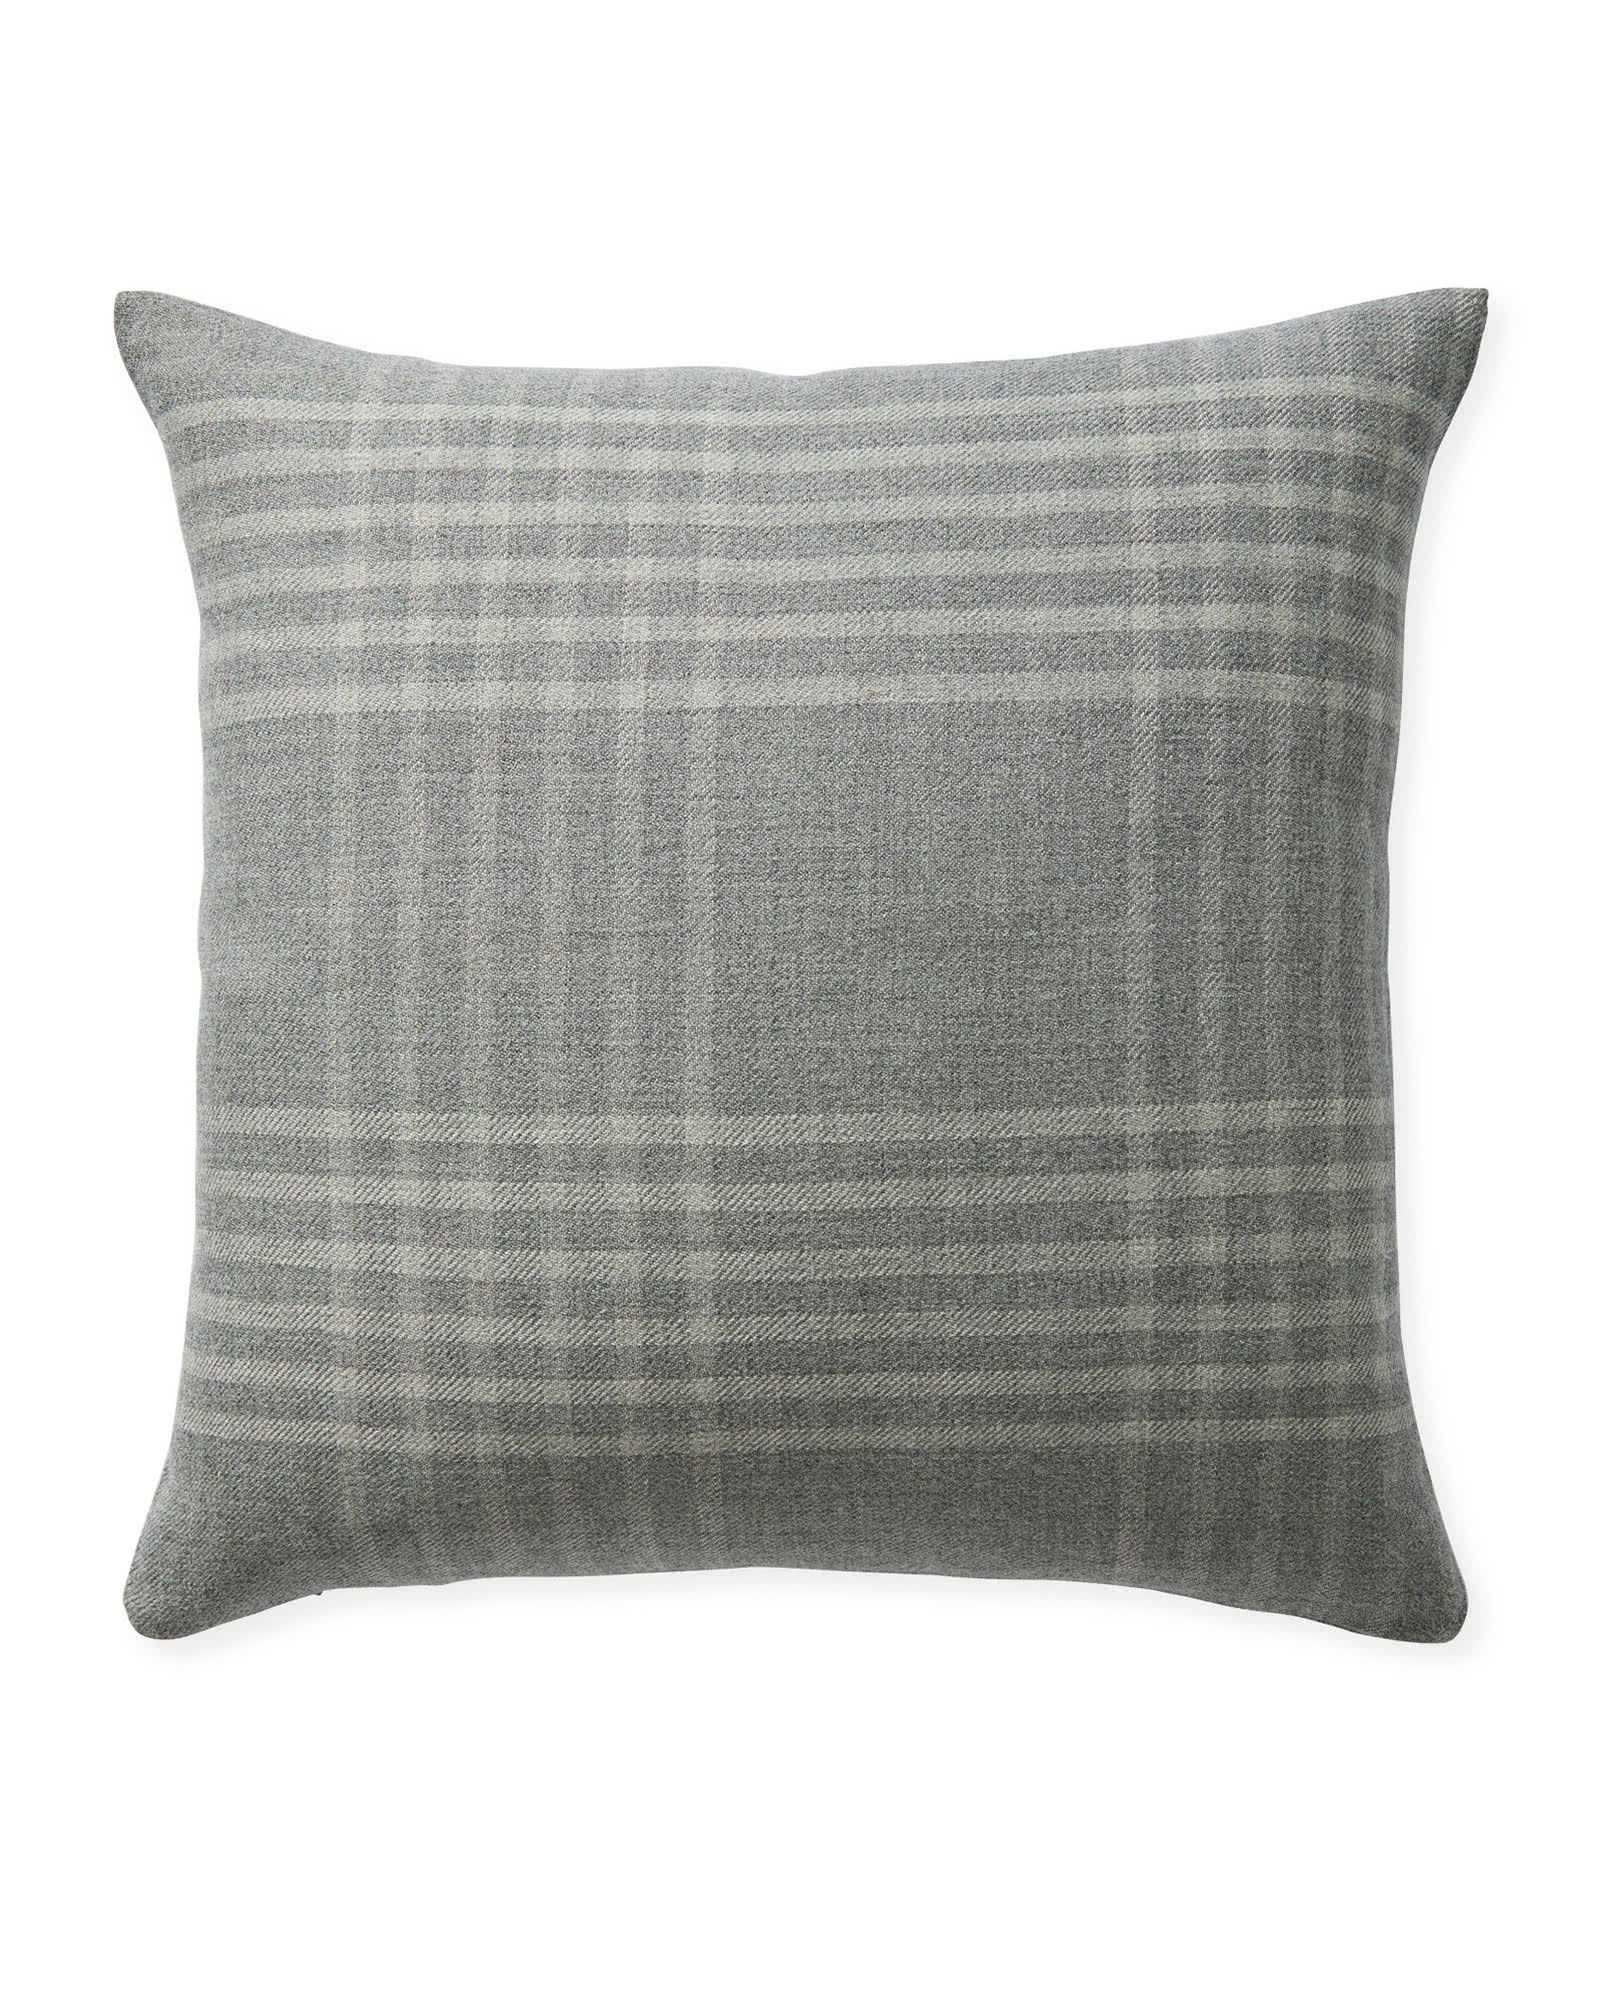 Blakely Plaid Pillow Cover,